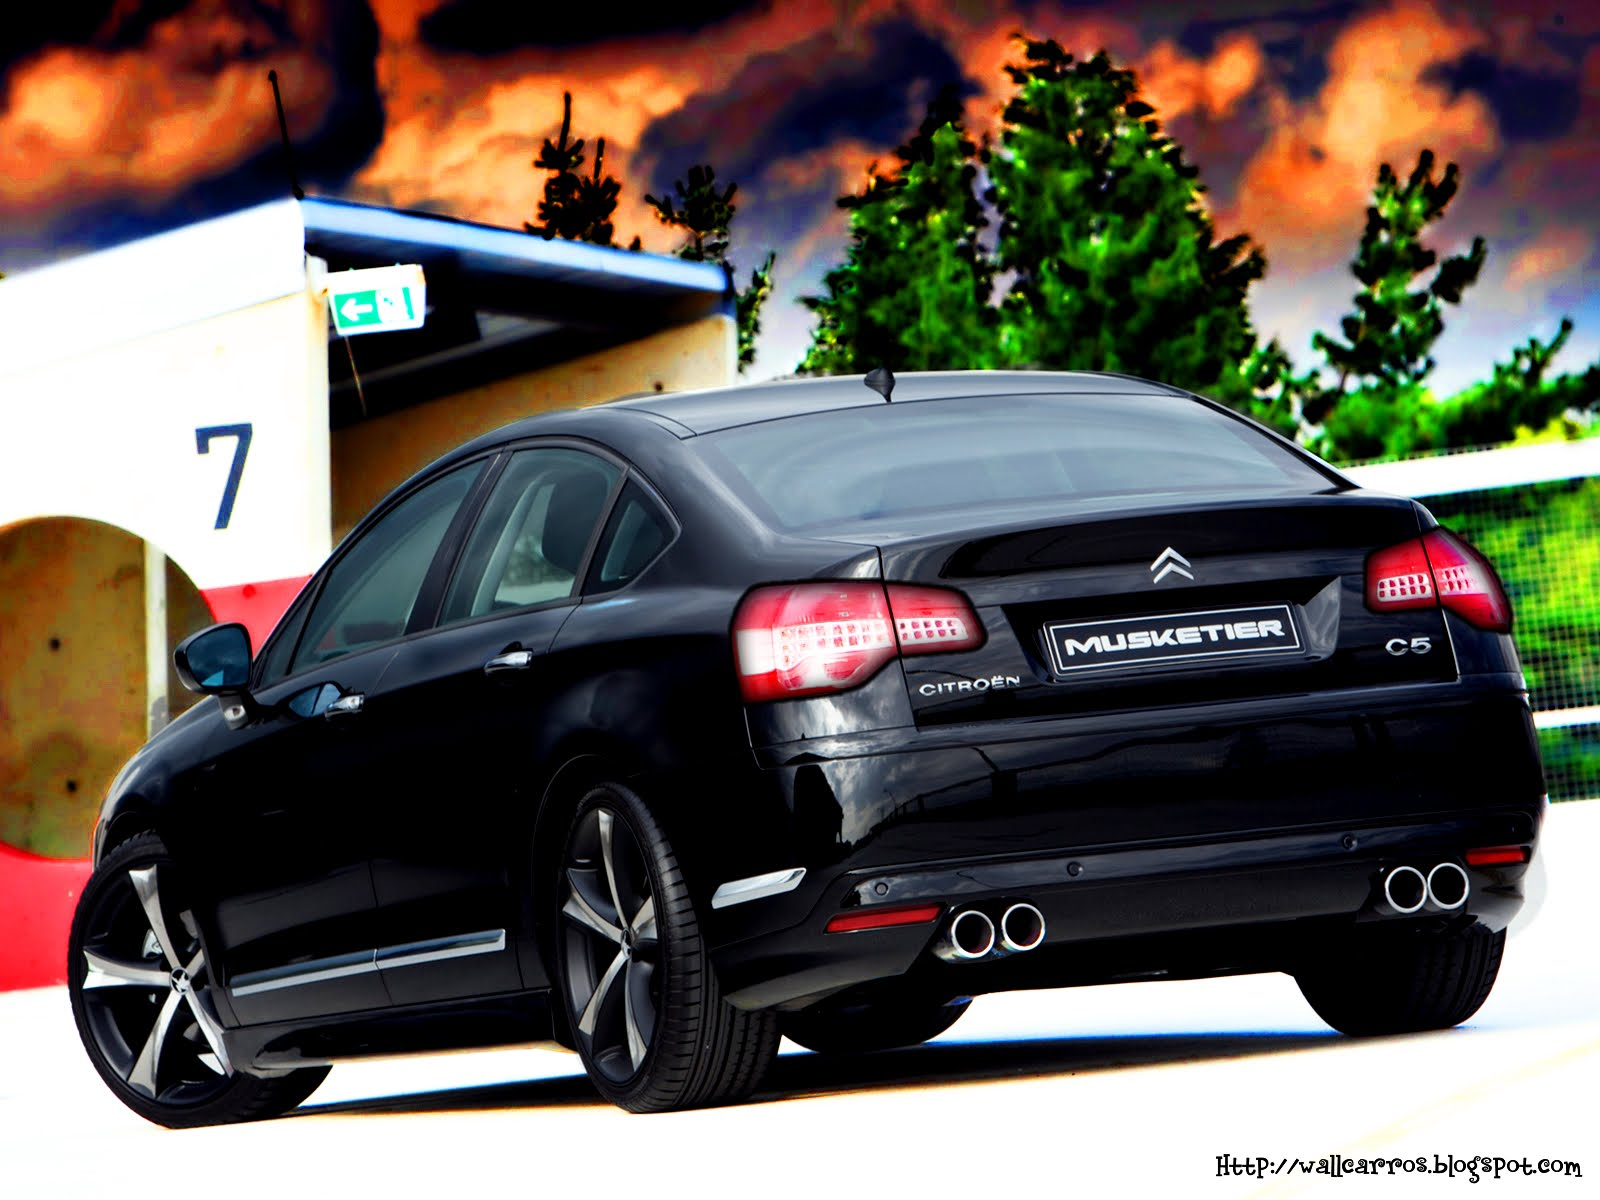 Citroen C5 Tuning Musketier